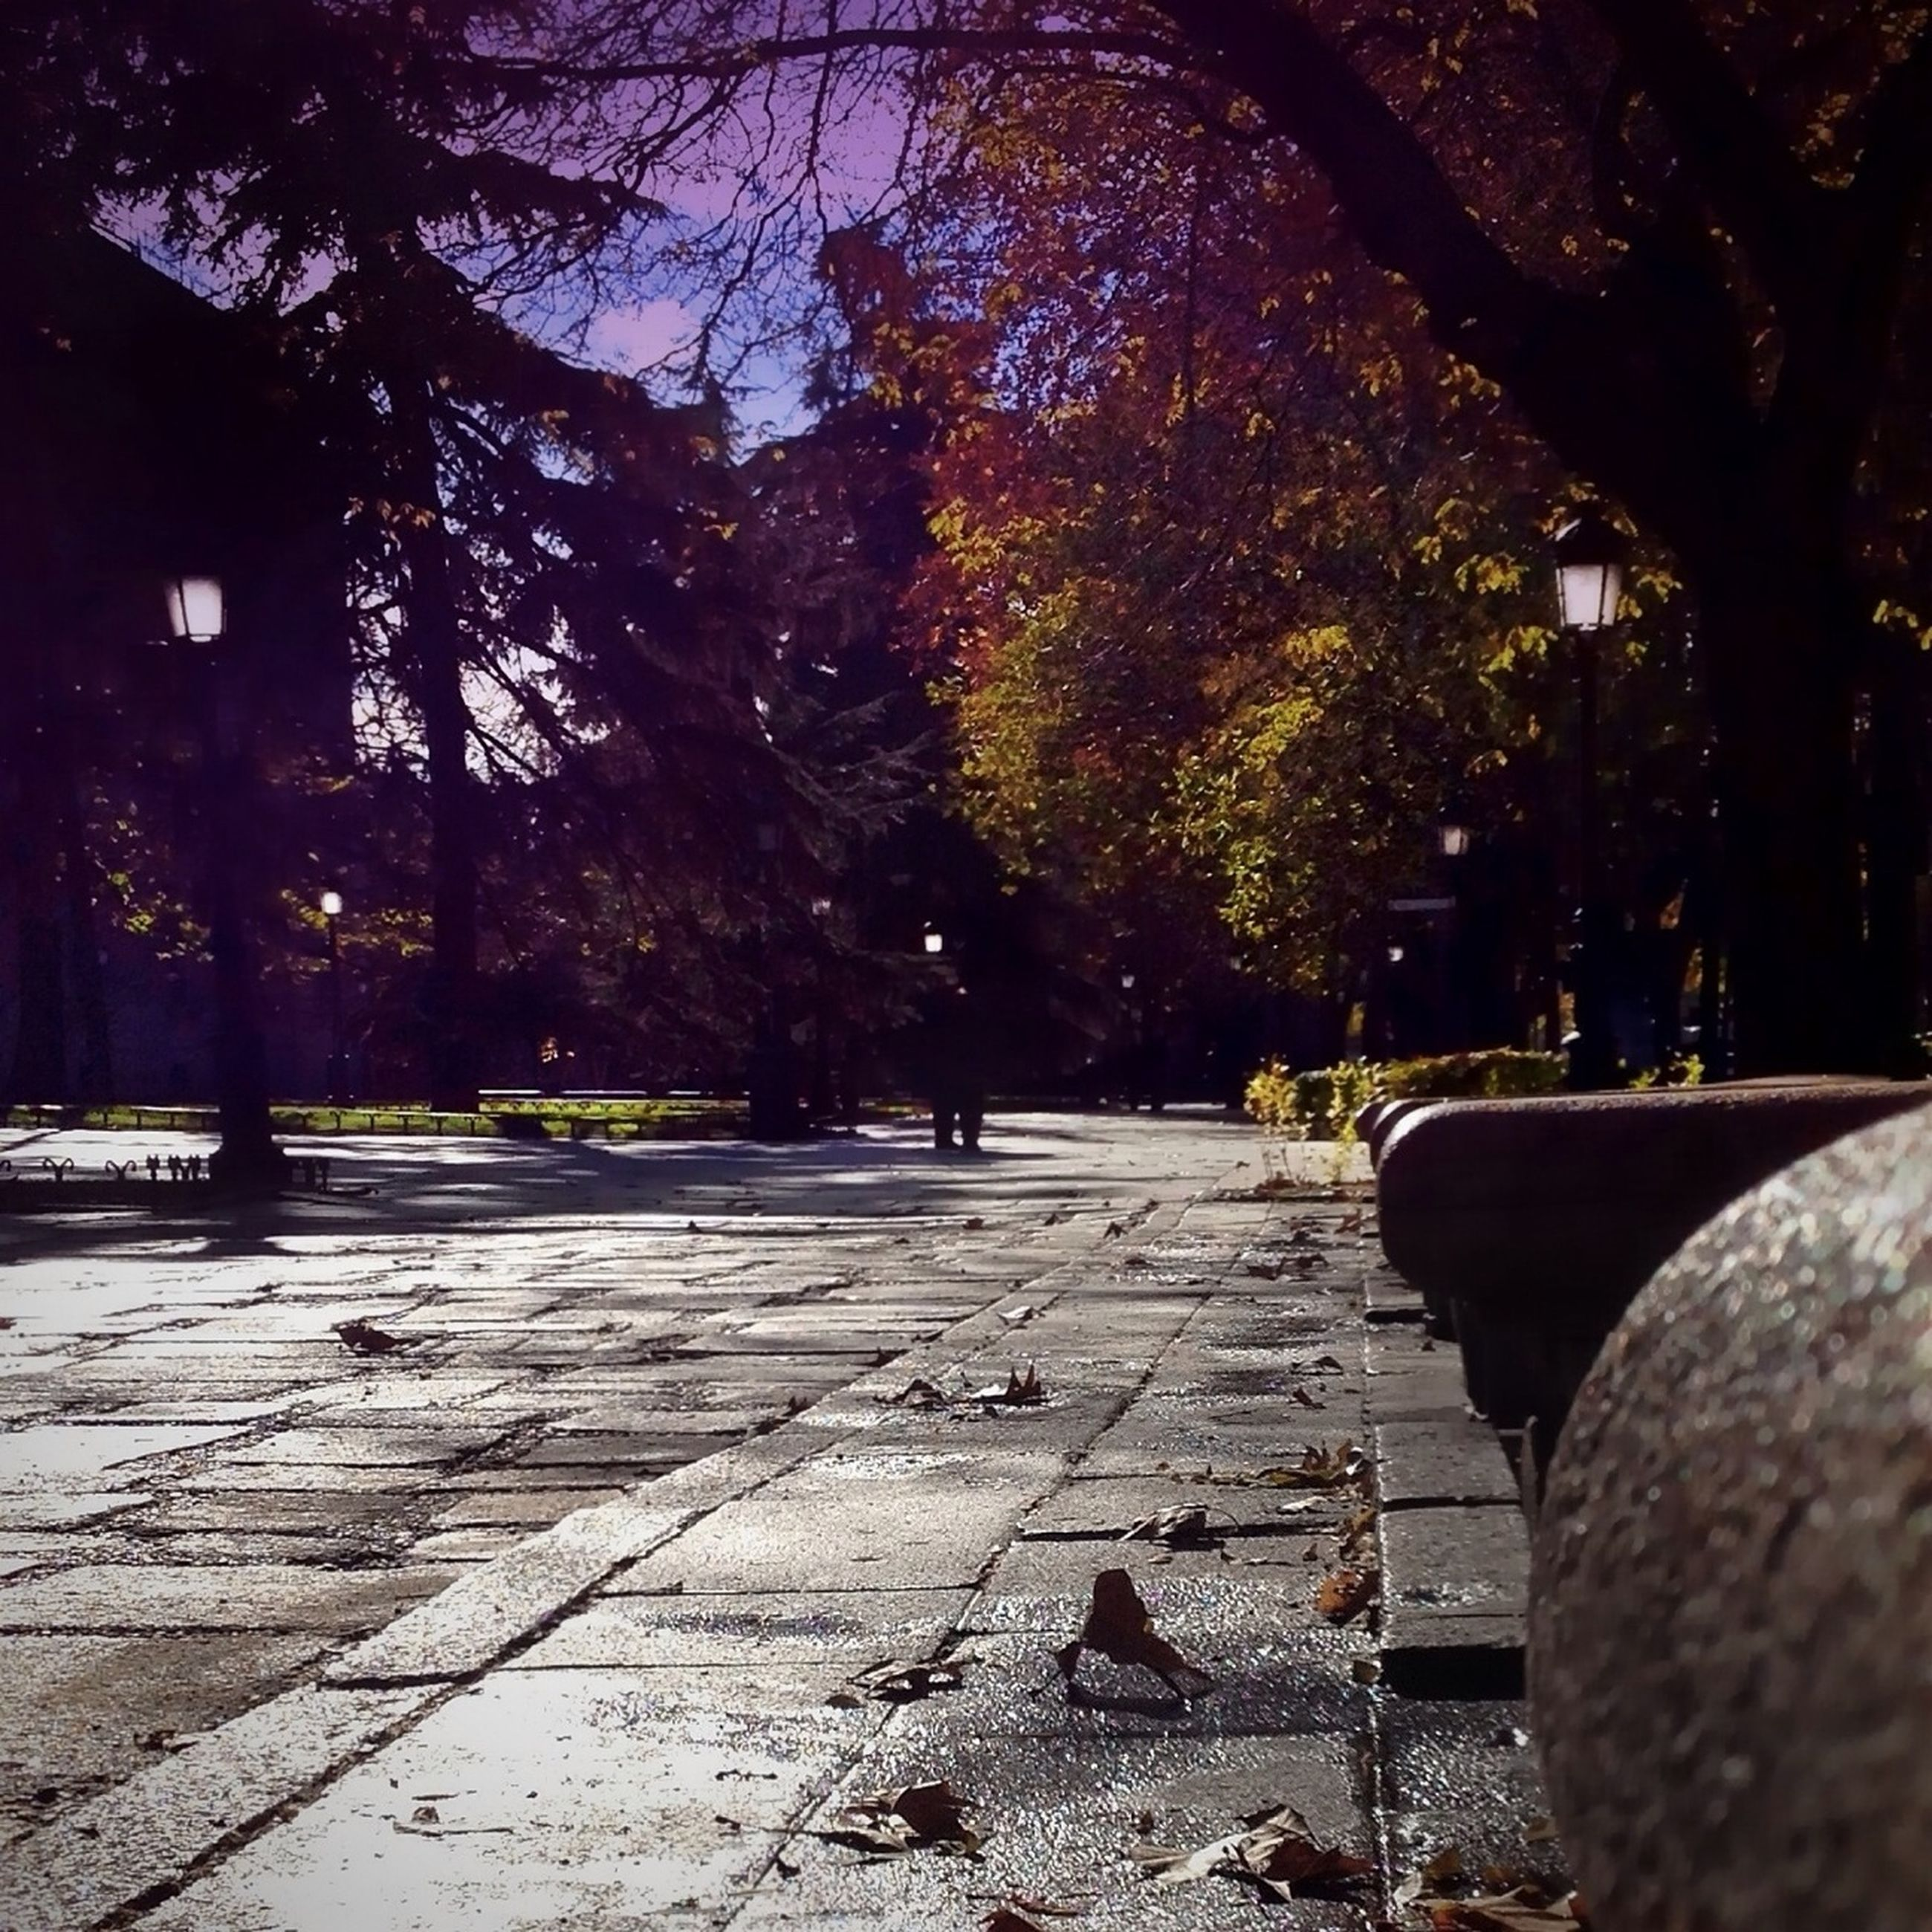 tree, the way forward, footpath, street, transportation, tree trunk, diminishing perspective, road, cobblestone, outdoors, built structure, day, sunlight, vanishing point, empty, branch, nature, growth, sidewalk, park - man made space